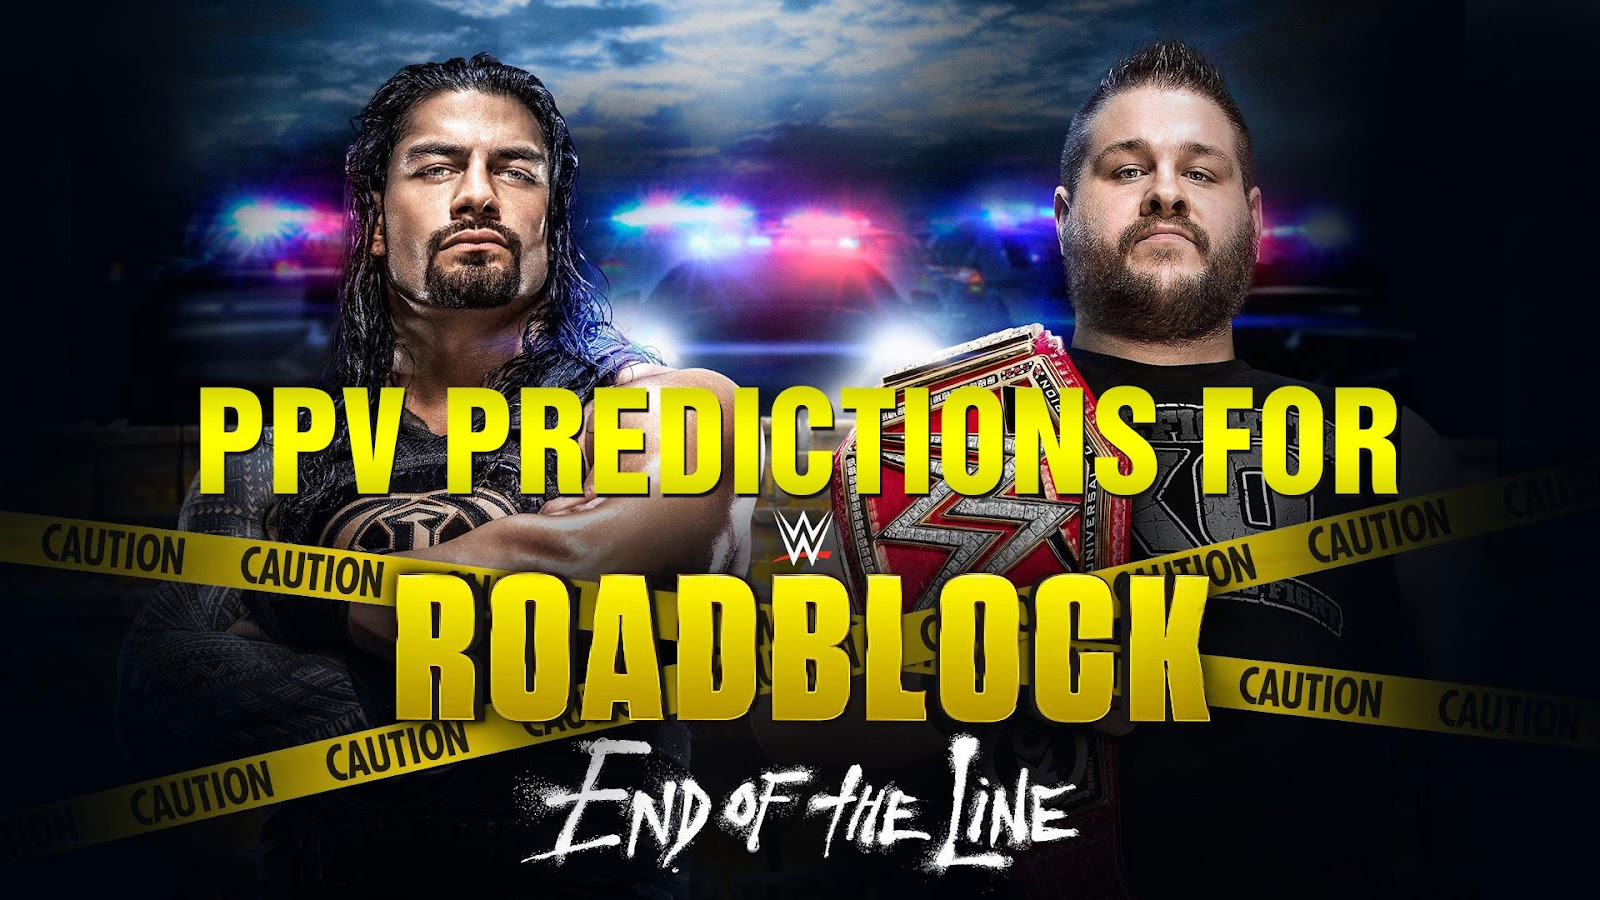 WWE ROADBLOCK: END OF THE LINE 2016 spoilers podcast